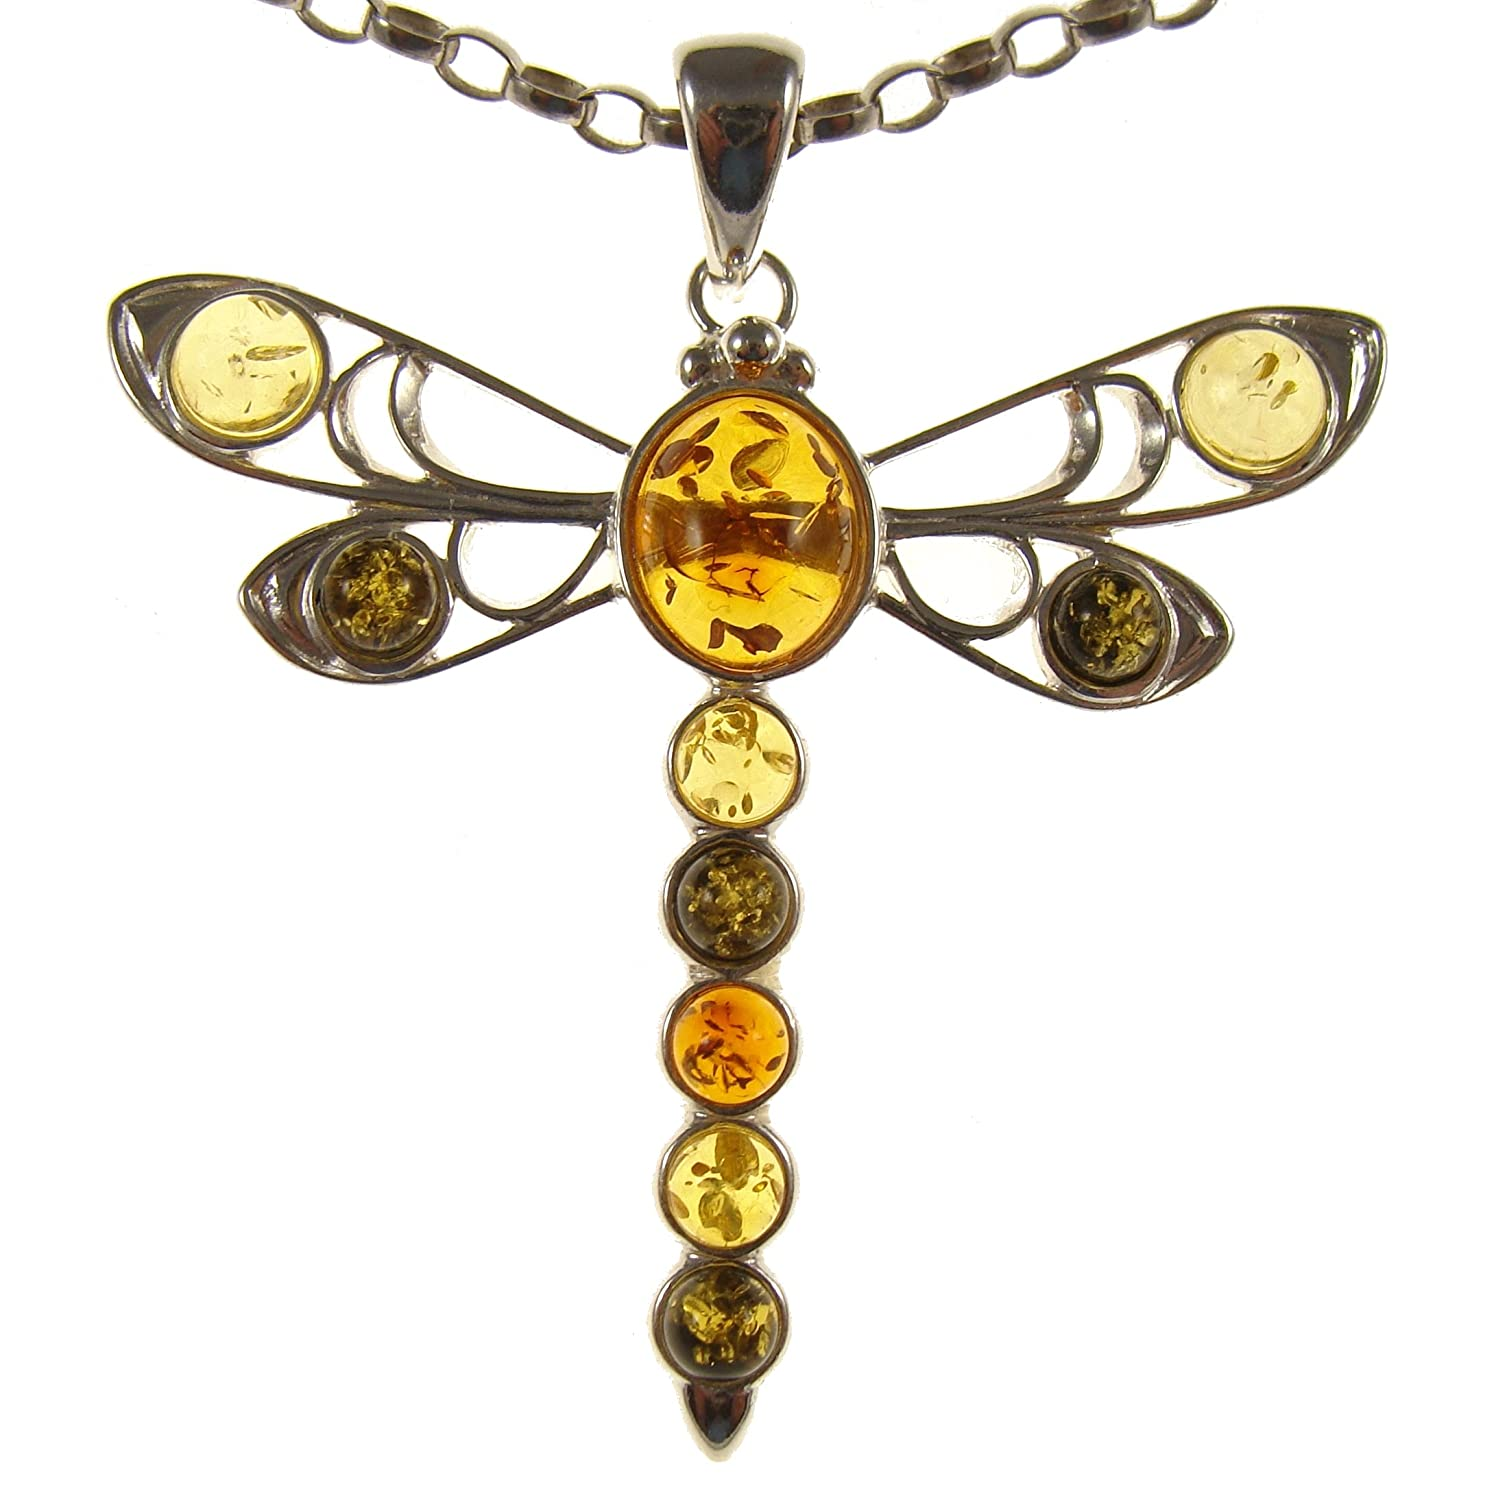 BALTIC AMBER AND STERLING SILVER 925 DRAGONFLY PENDANT NECKLACE - 14 16 18 20 22 24 26 28 30 32 34